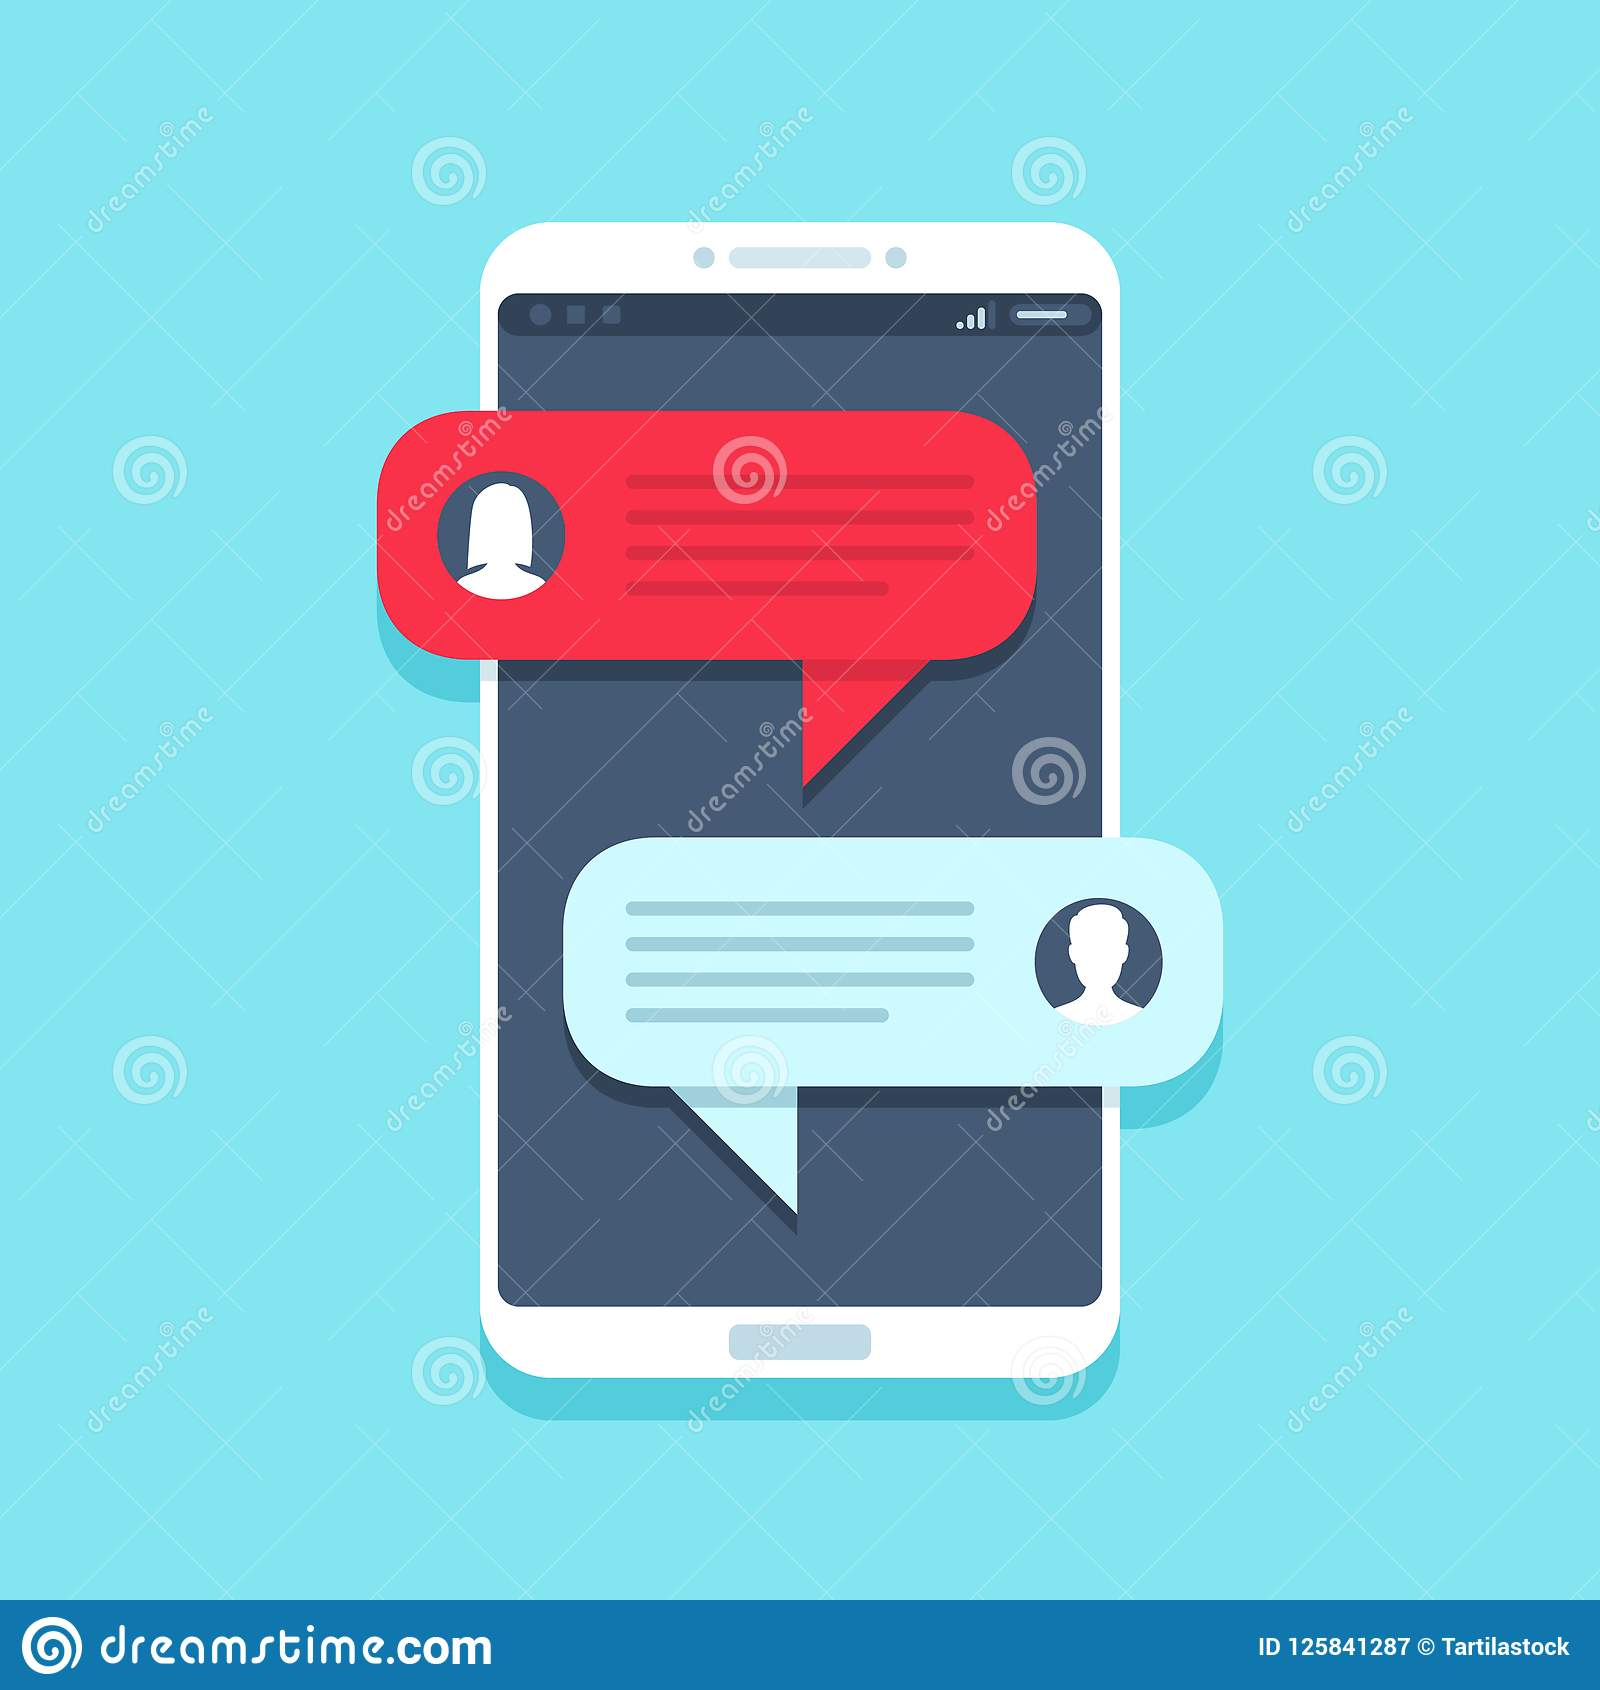 Chat message on smartphone. Mobile phone chatting, people texting messages and sms bubble on phones screen vector flat